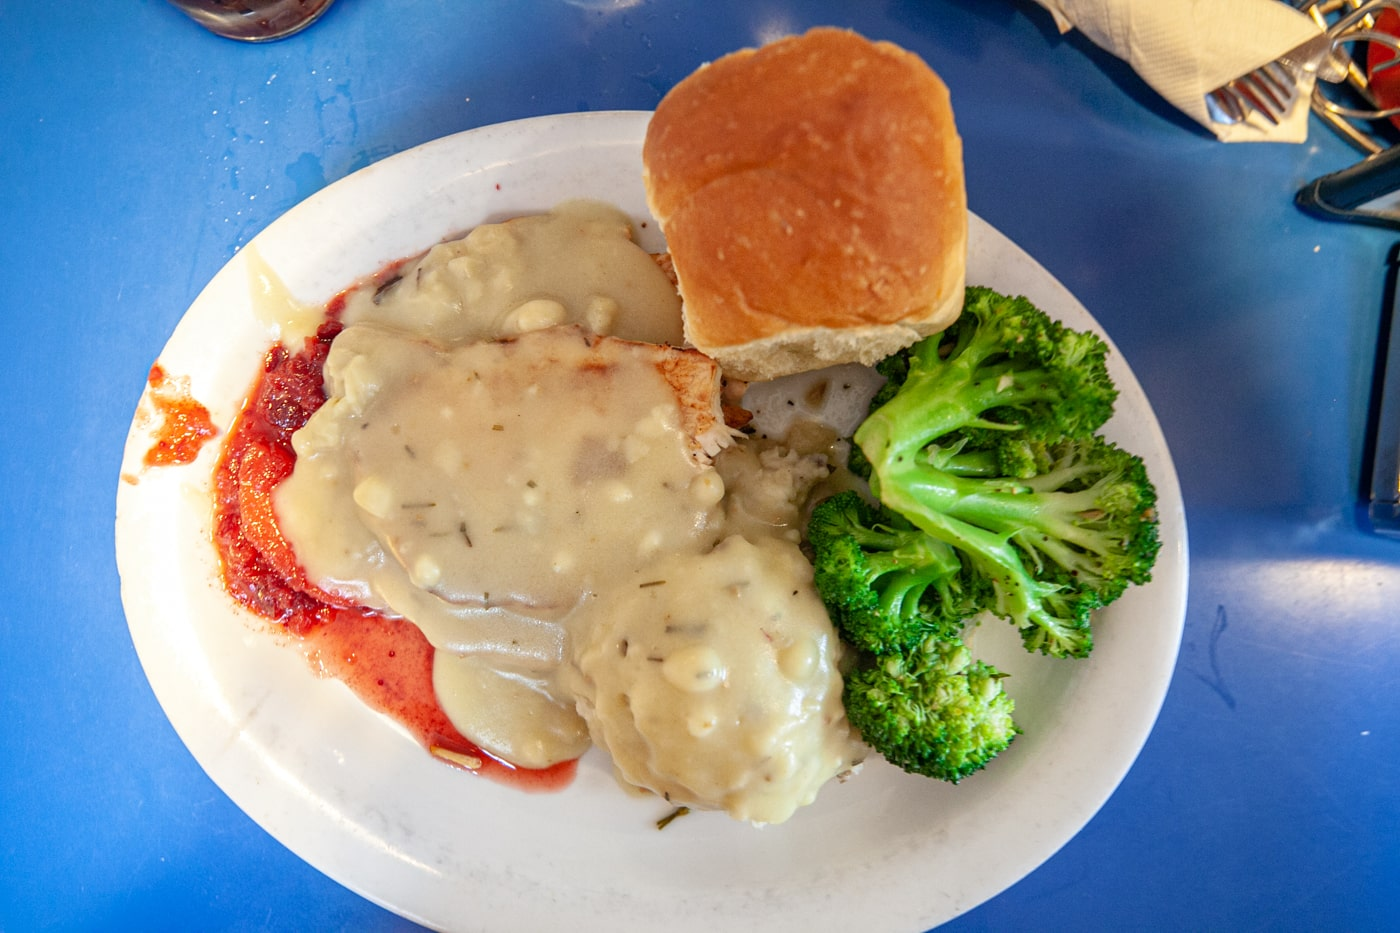 Roast Turkey Platter with cranberry applesauce, garlic butter broccoli, turkey gravy, and mashed potatoes at Monty's Blue Plate Diner in Madison, Wisconsin.